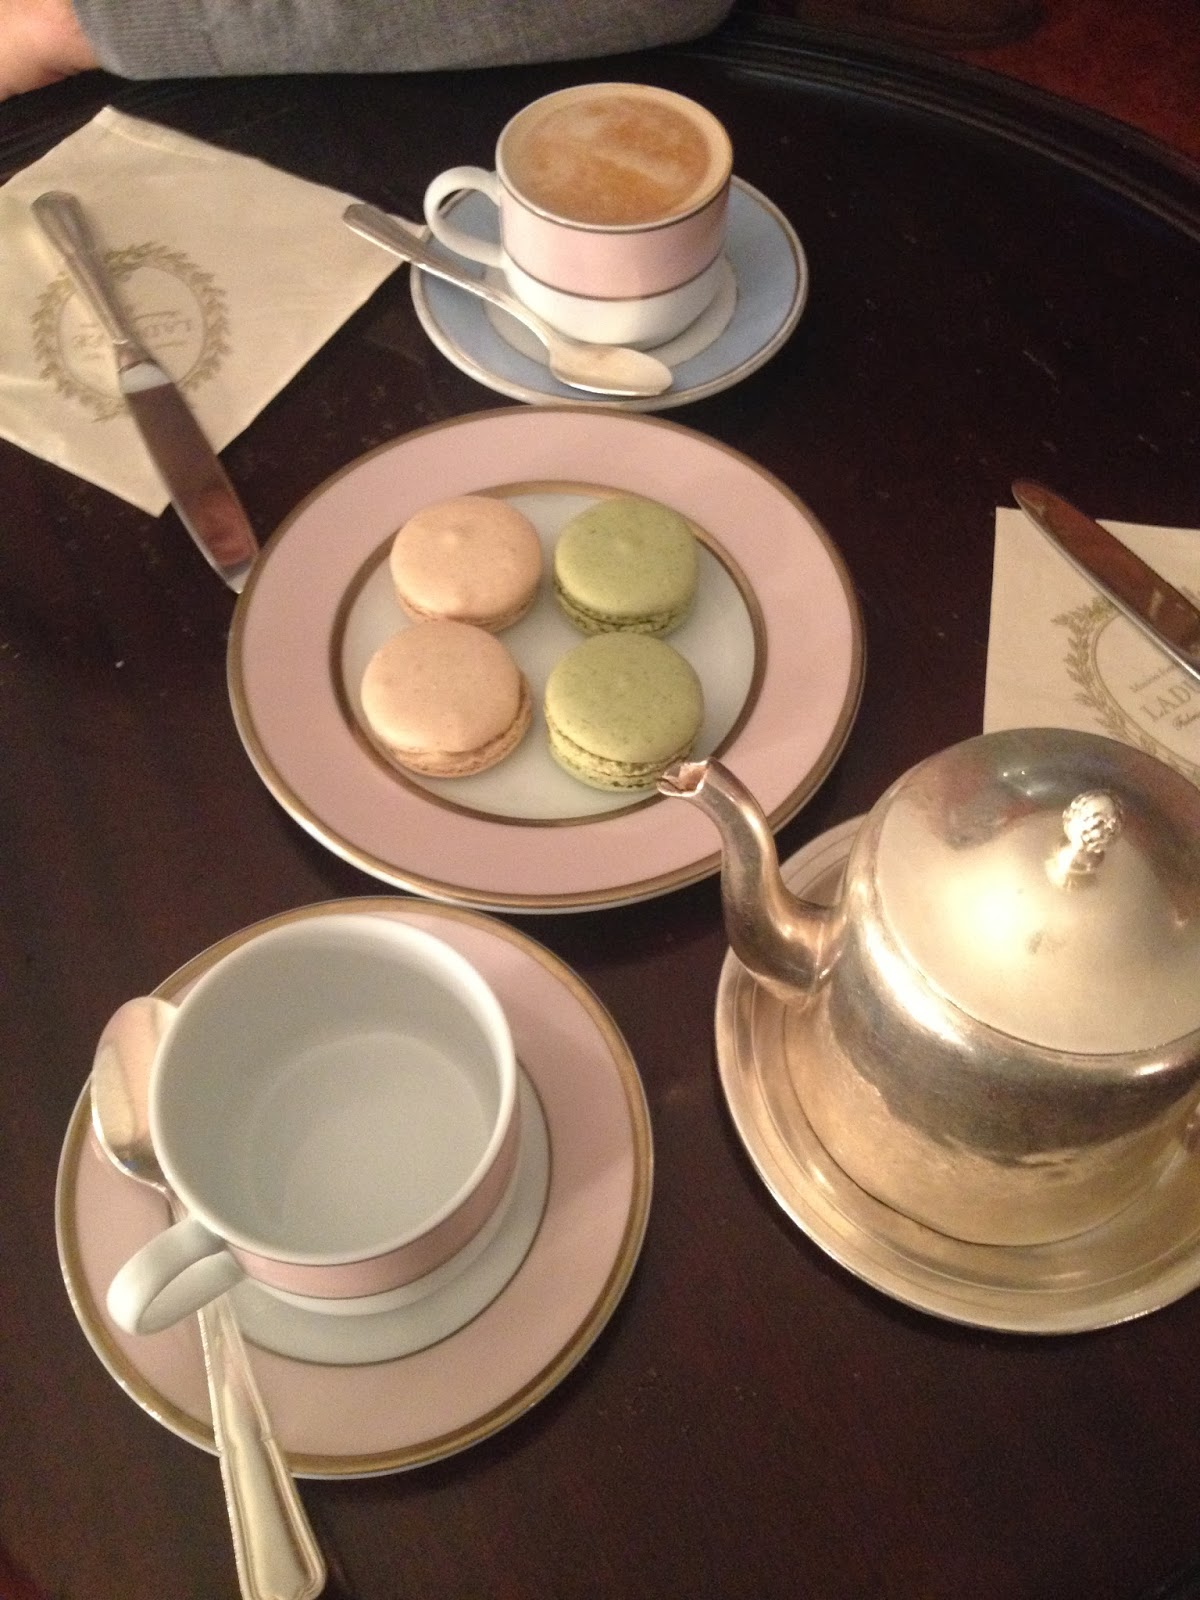 macaroons, laduree, laduree london, harrods, laduree harrods london, vanilla macaroon, pistachio macaroon, tea time, high tea, cappucino